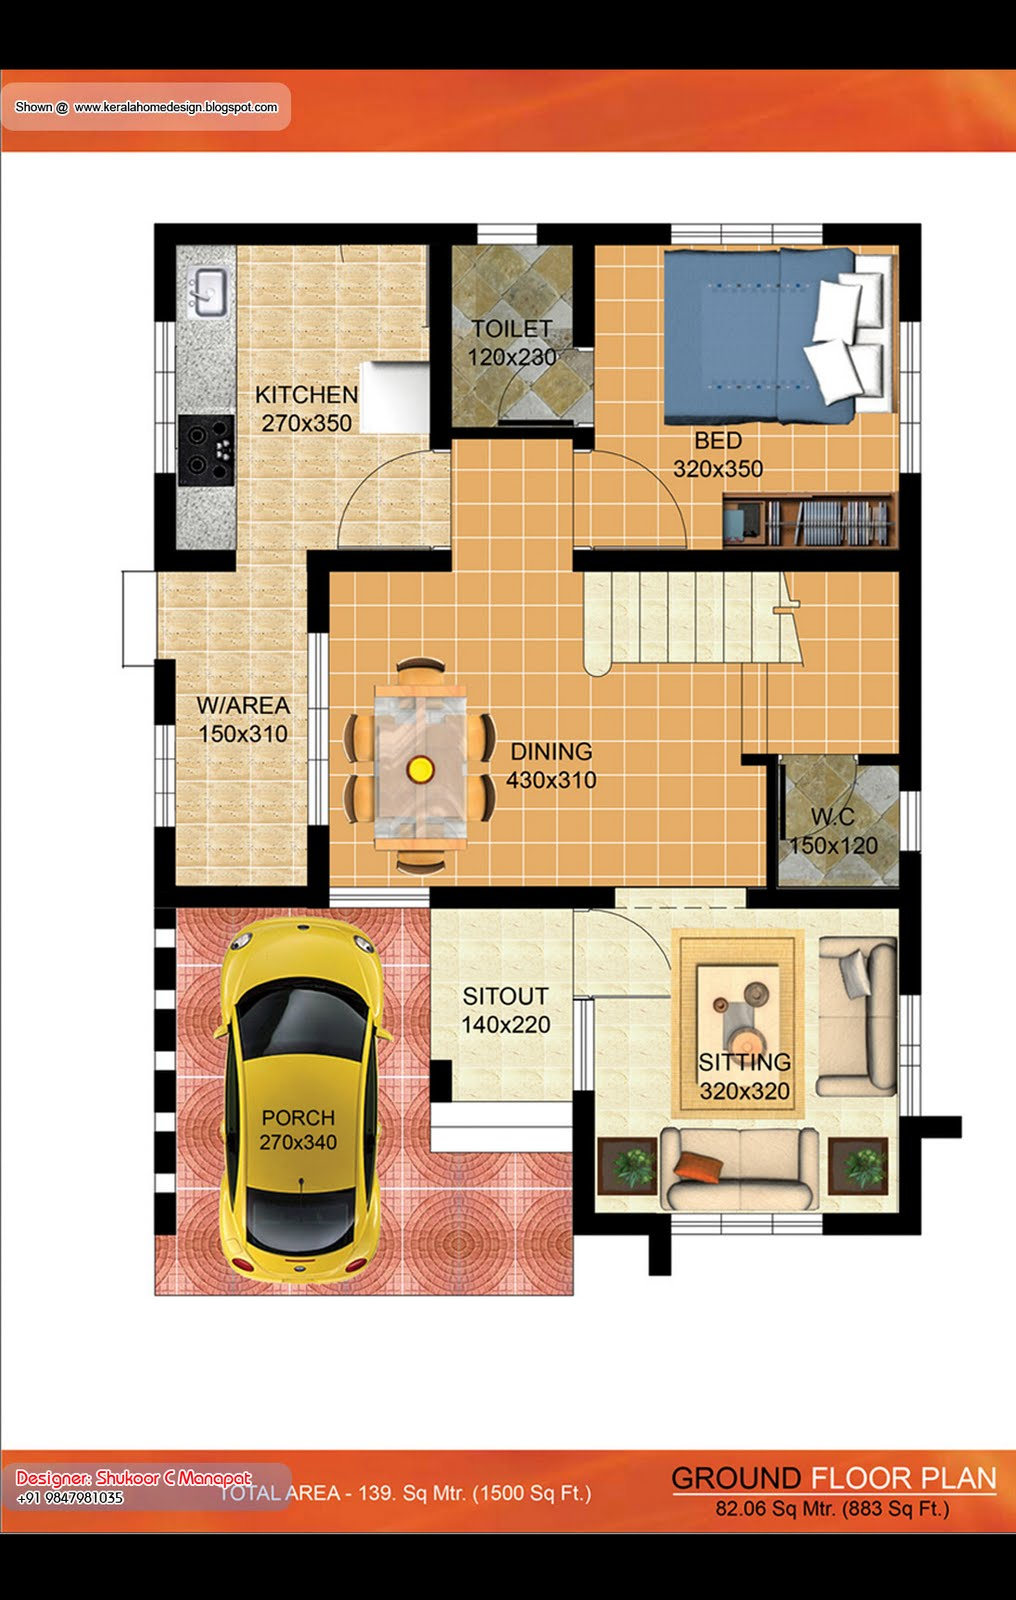 4 Plans Sq 1600 Ft Small Bedrooms House